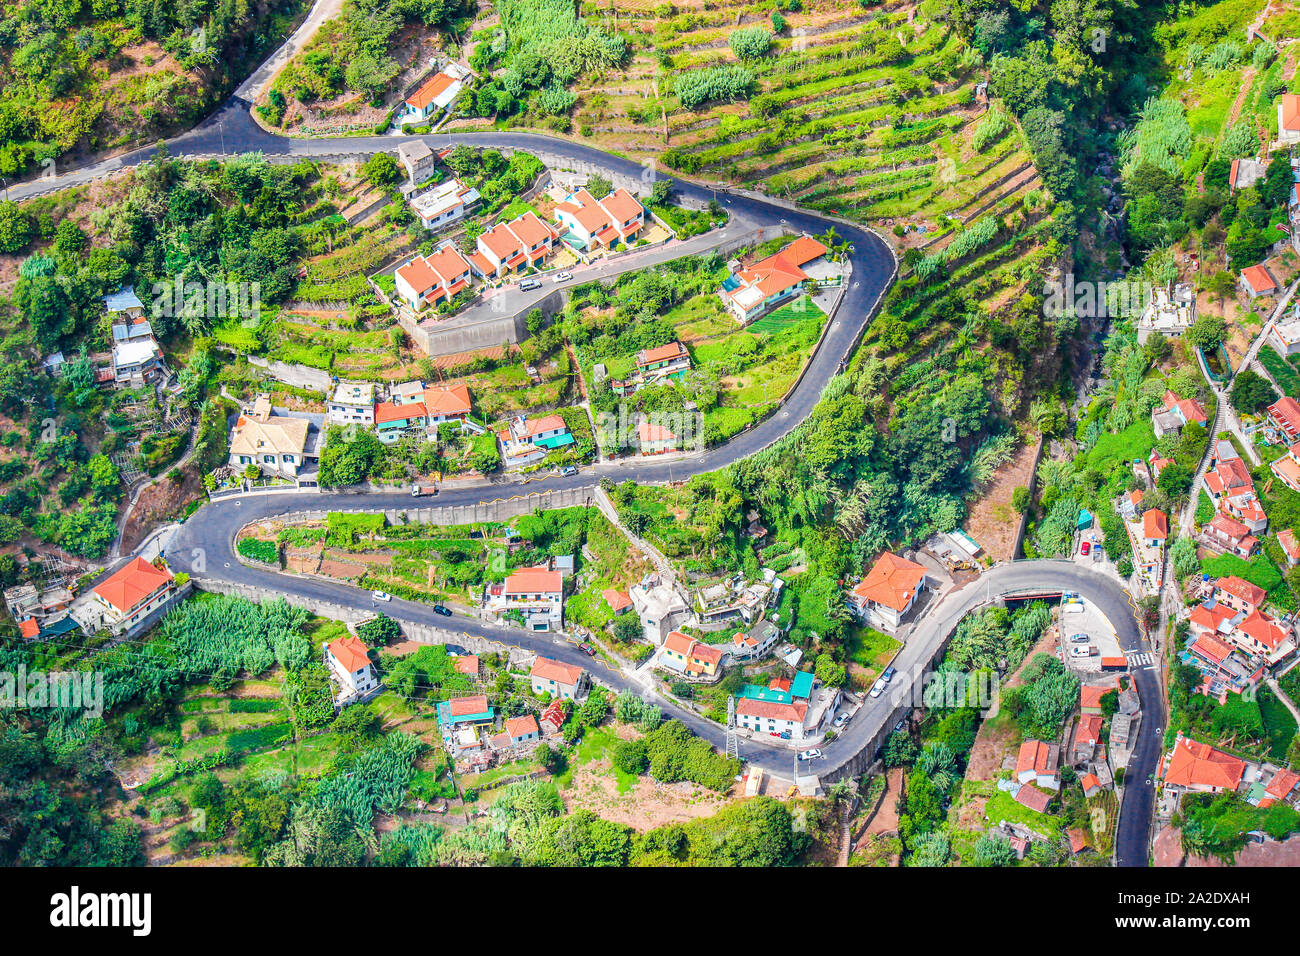 Aerial view of a village Curral das Freiras, Madeira Island, Portugal. Rural houses, green terraced fields, and scenic serpentine road photographed from above. Aerial landscape. Travel destination. Stock Photo